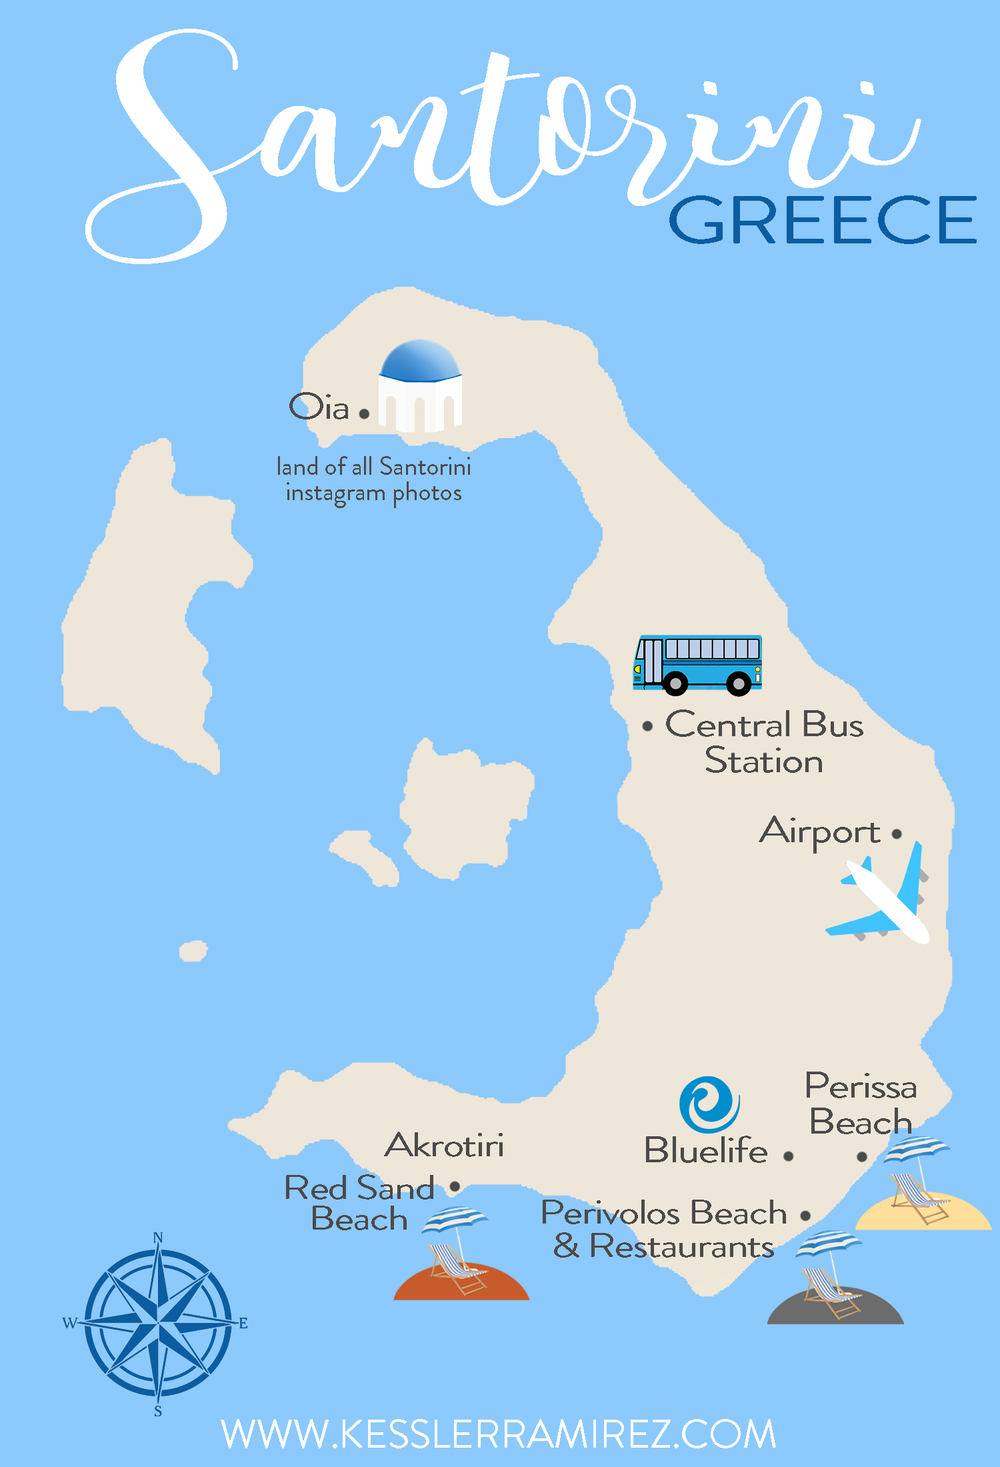 Map of Santorini Greece by Kessler Ramirez